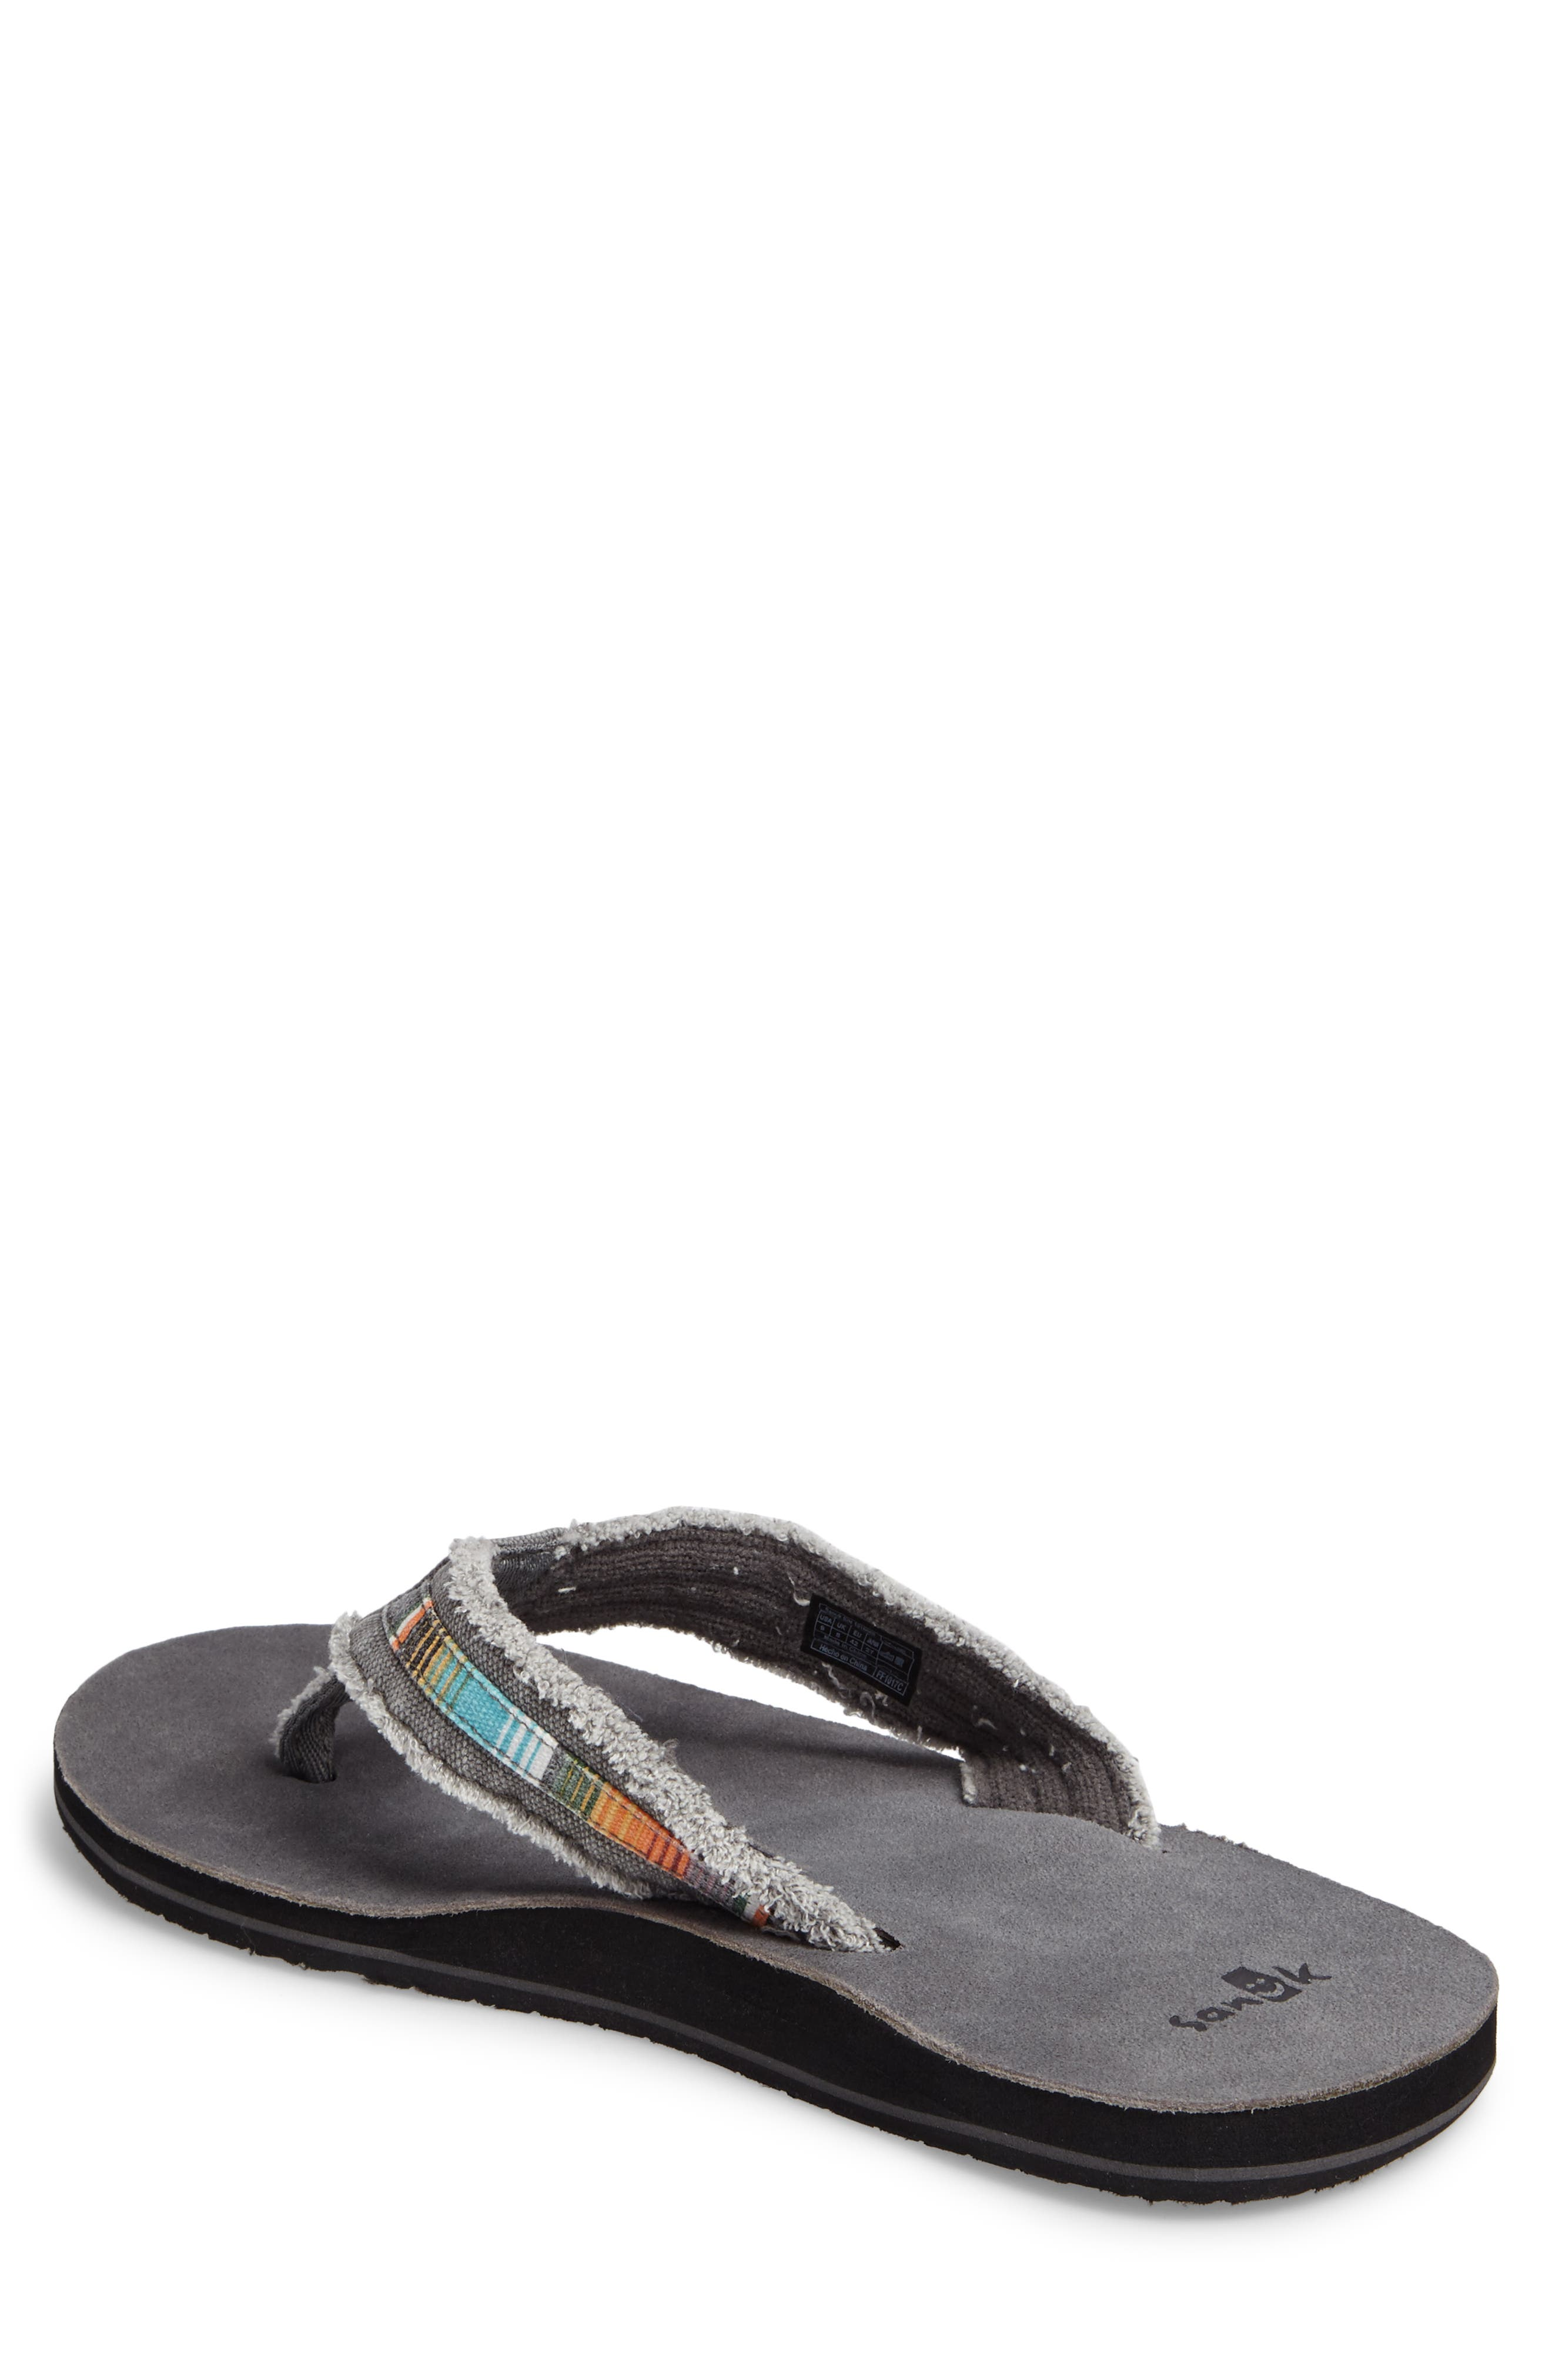 Alternate Image 2  - Sanuk Fraid So Flip Flop (Men)